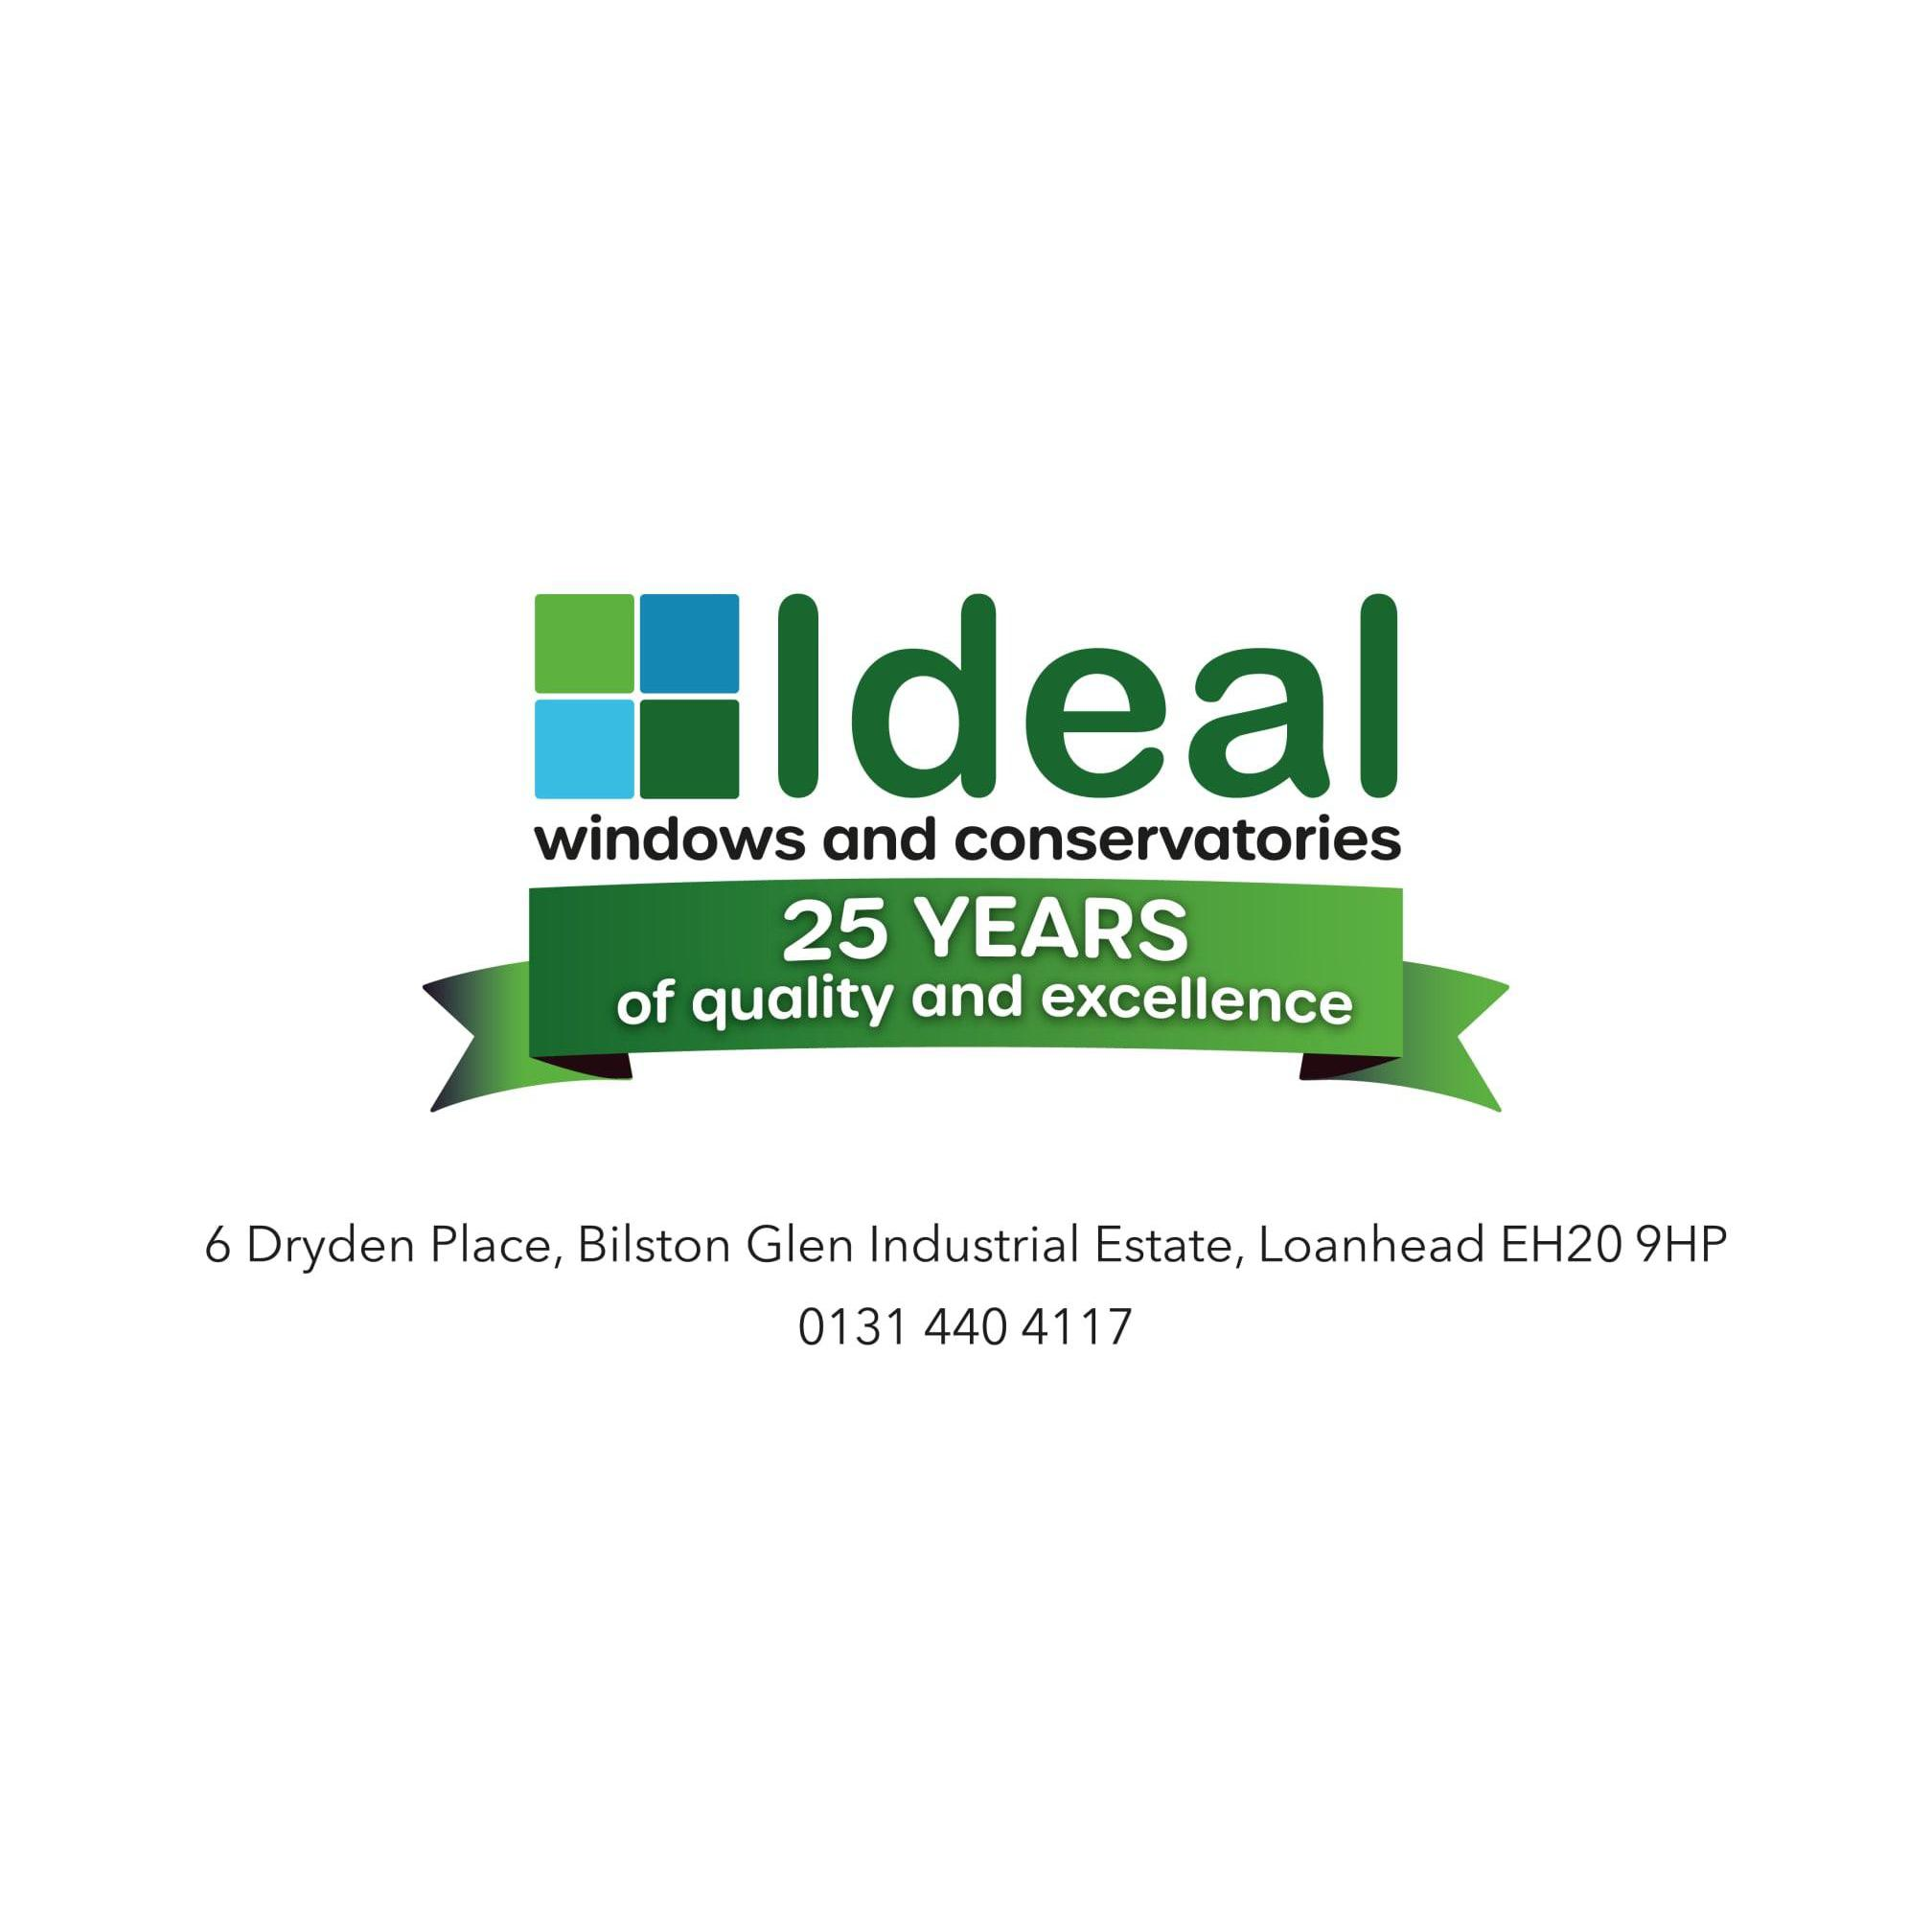 Ideal Windows & Conservatories